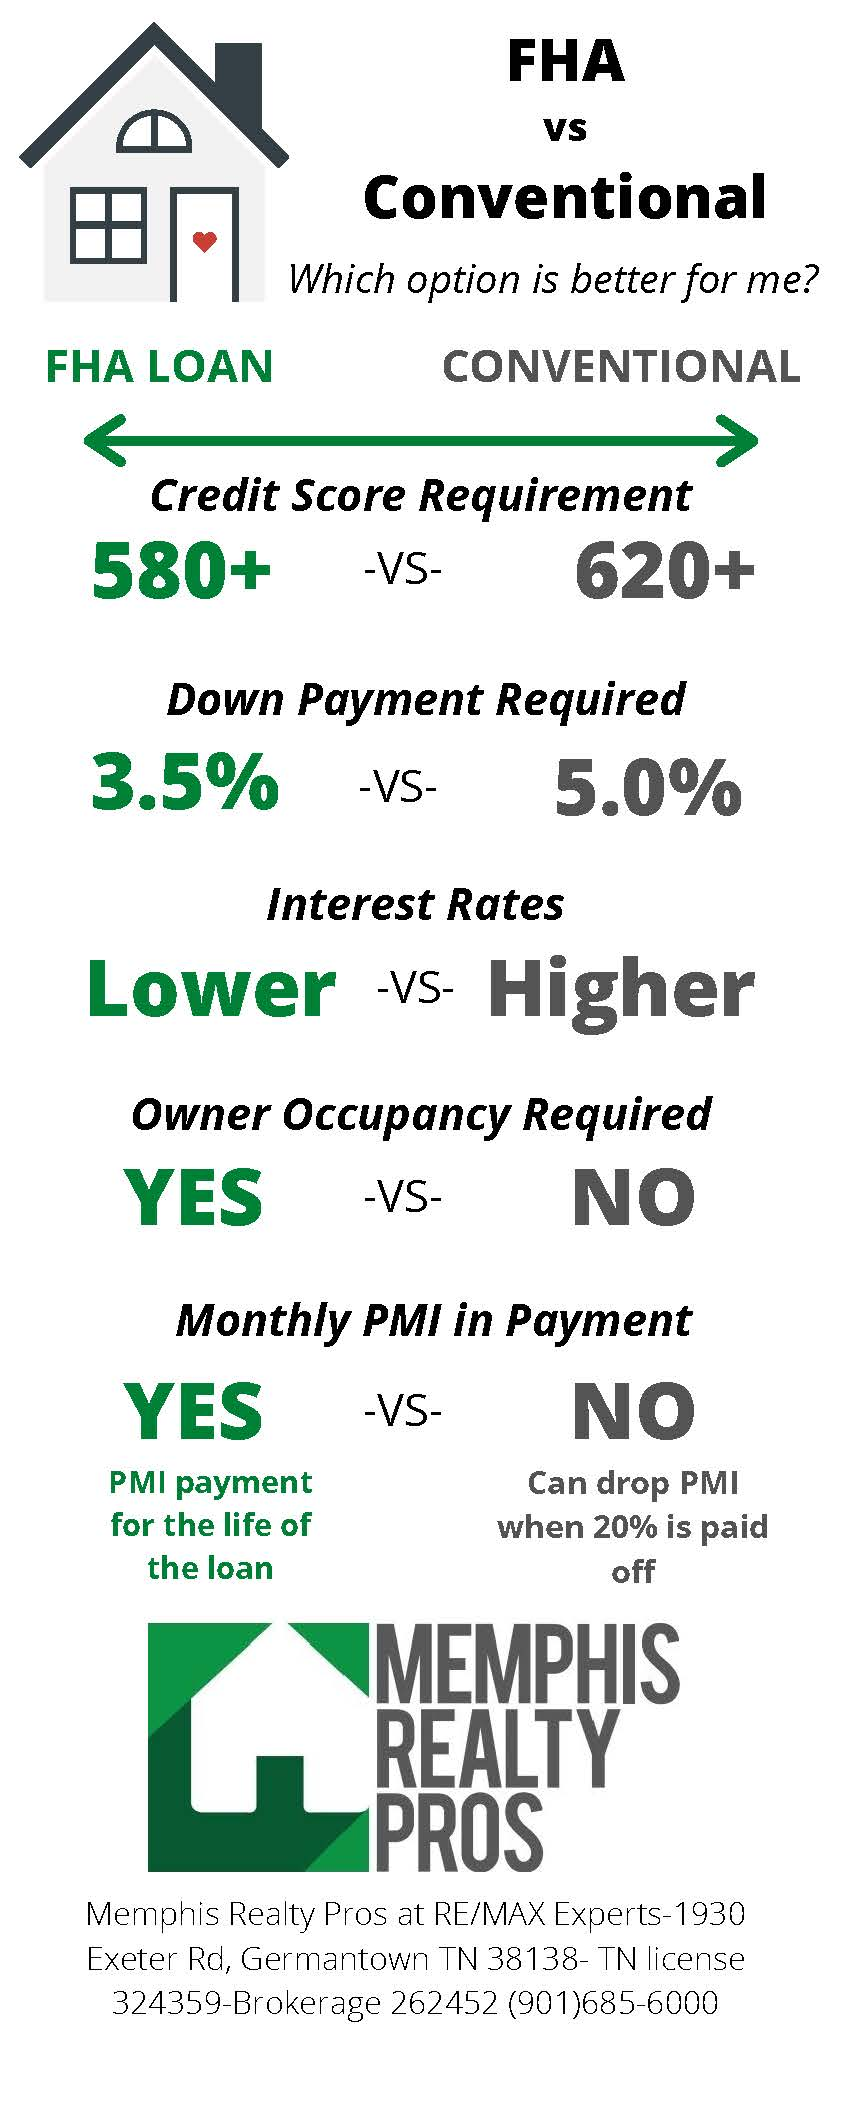 Breakdown if differences between fha and conventional loans